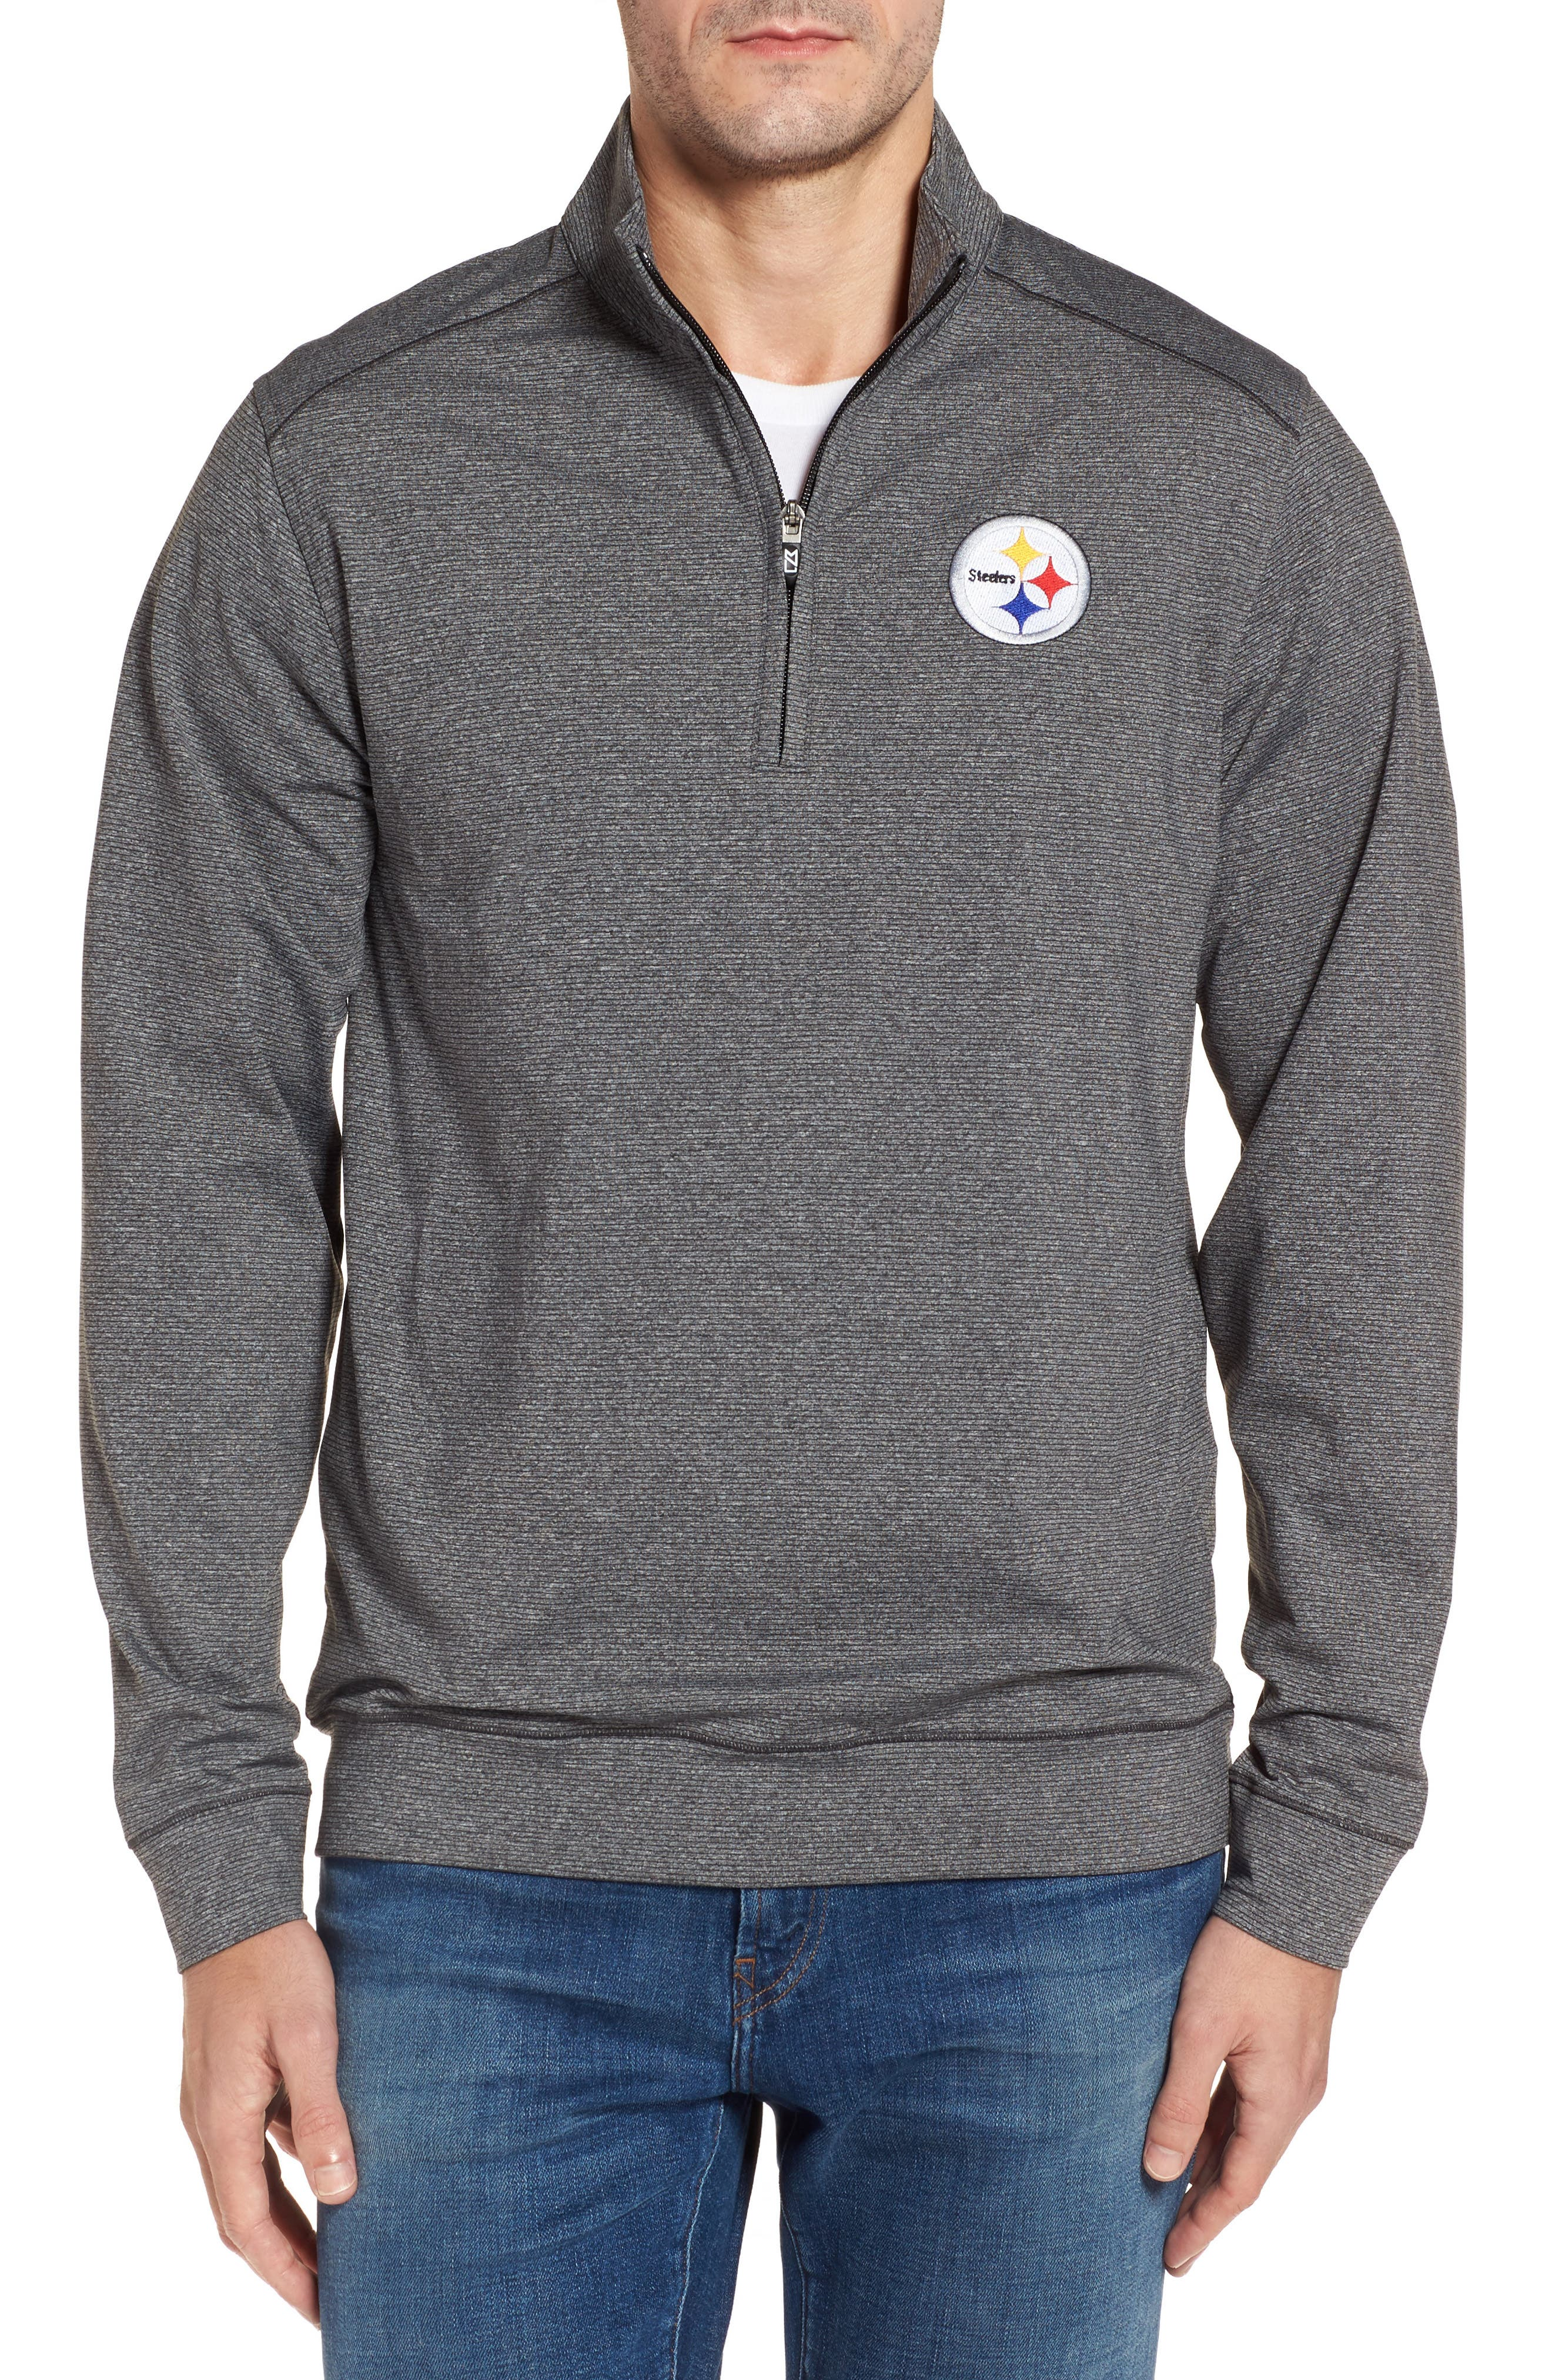 Cutter & Buck Shoreline - Pittsburgh Steelers Half Zip Pullover